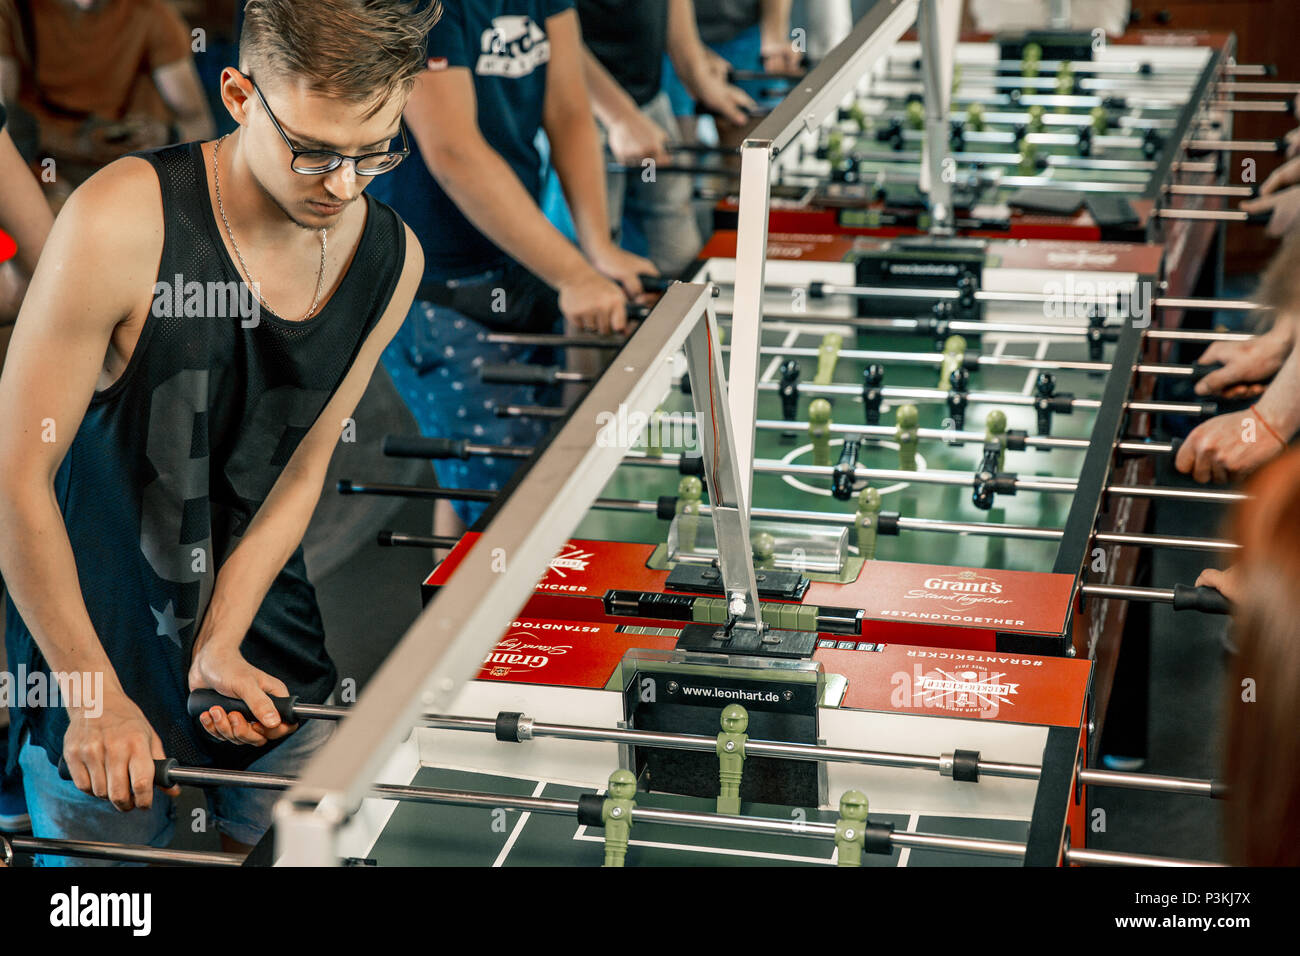 KYIV, UKRAINE, bar league of Grants KickerKicker 10 June 2018. Active men and women have fun during table soccer game. Competitions and qualifying rou - Stock Image